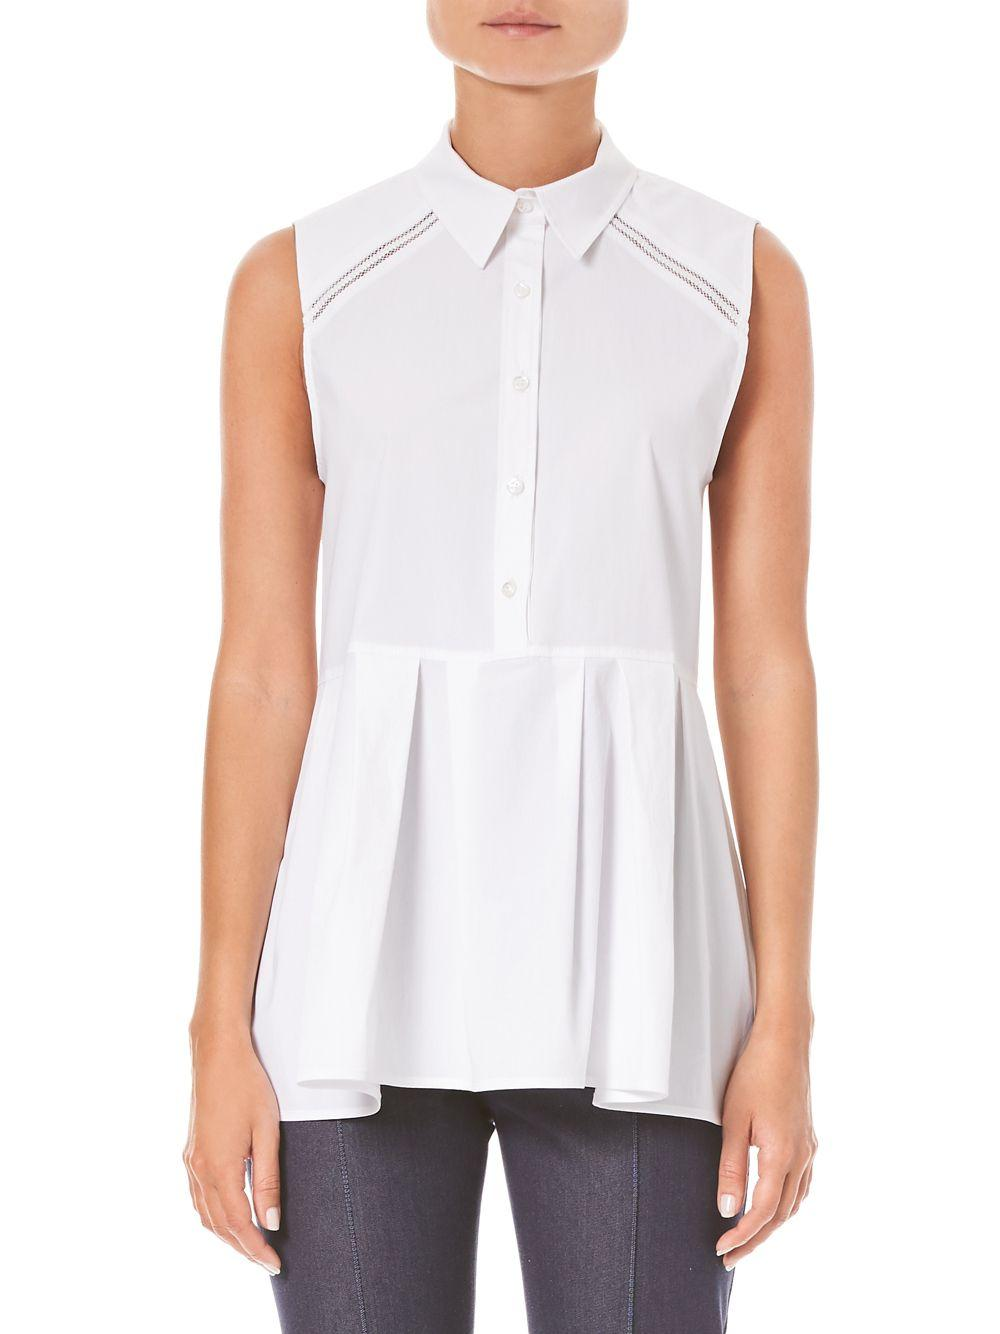 a16f9b584444c Carolina Herrera - White Stretch Sleeveless Peplum Shirt - Lyst. View  fullscreen